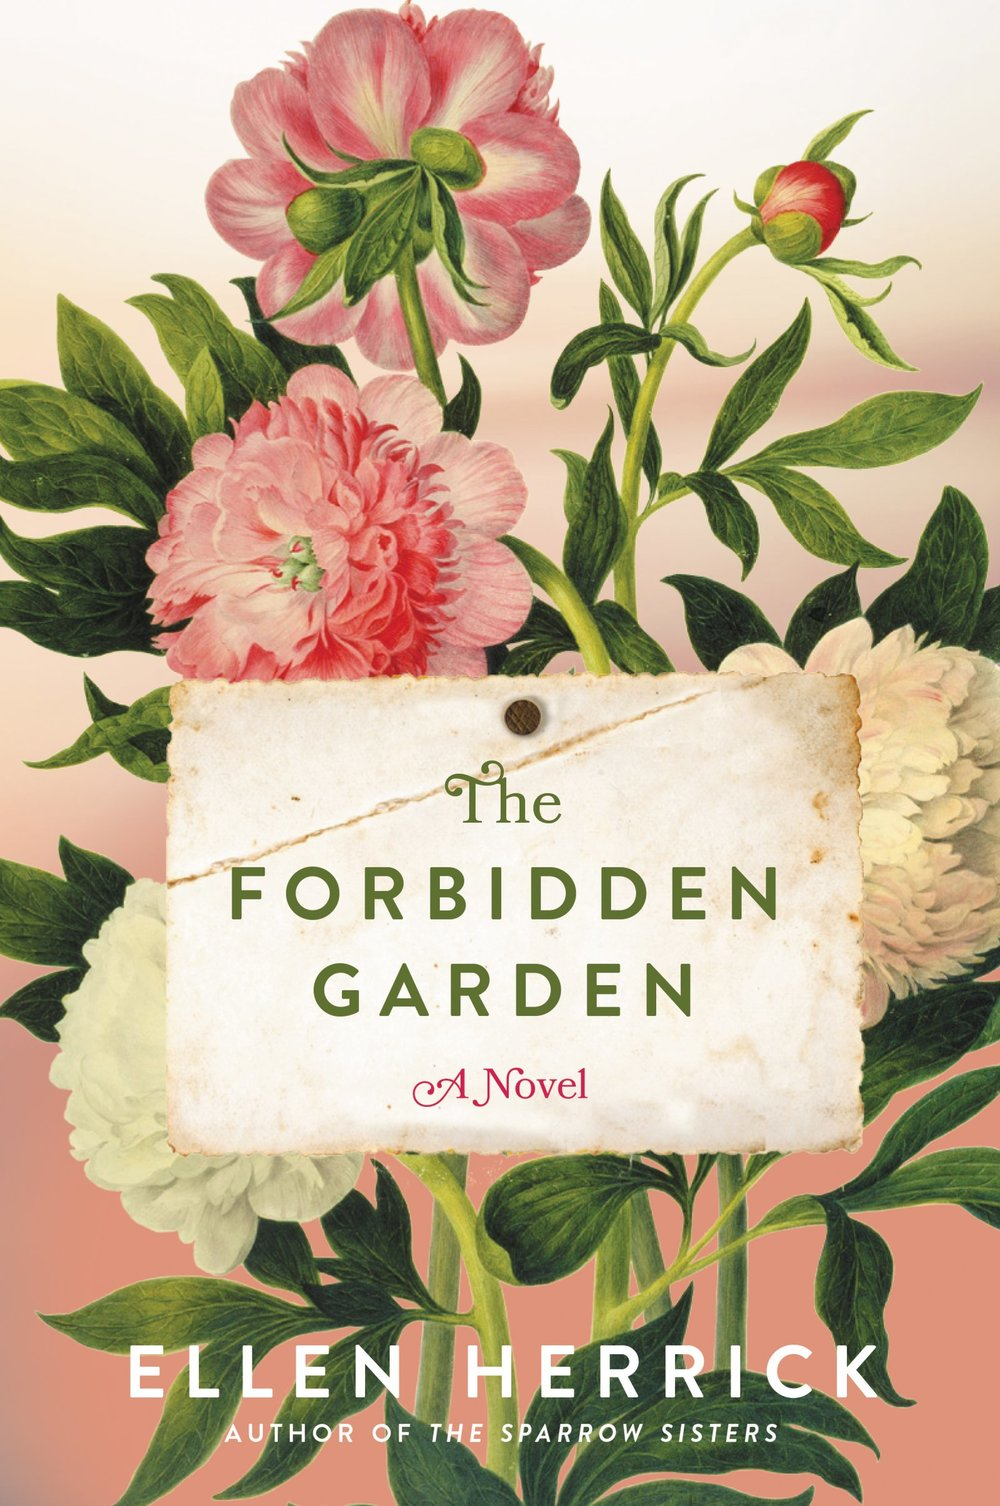 The Forbidden Garden  by Ellen Herrick William Morrow ---- April 4, 2017